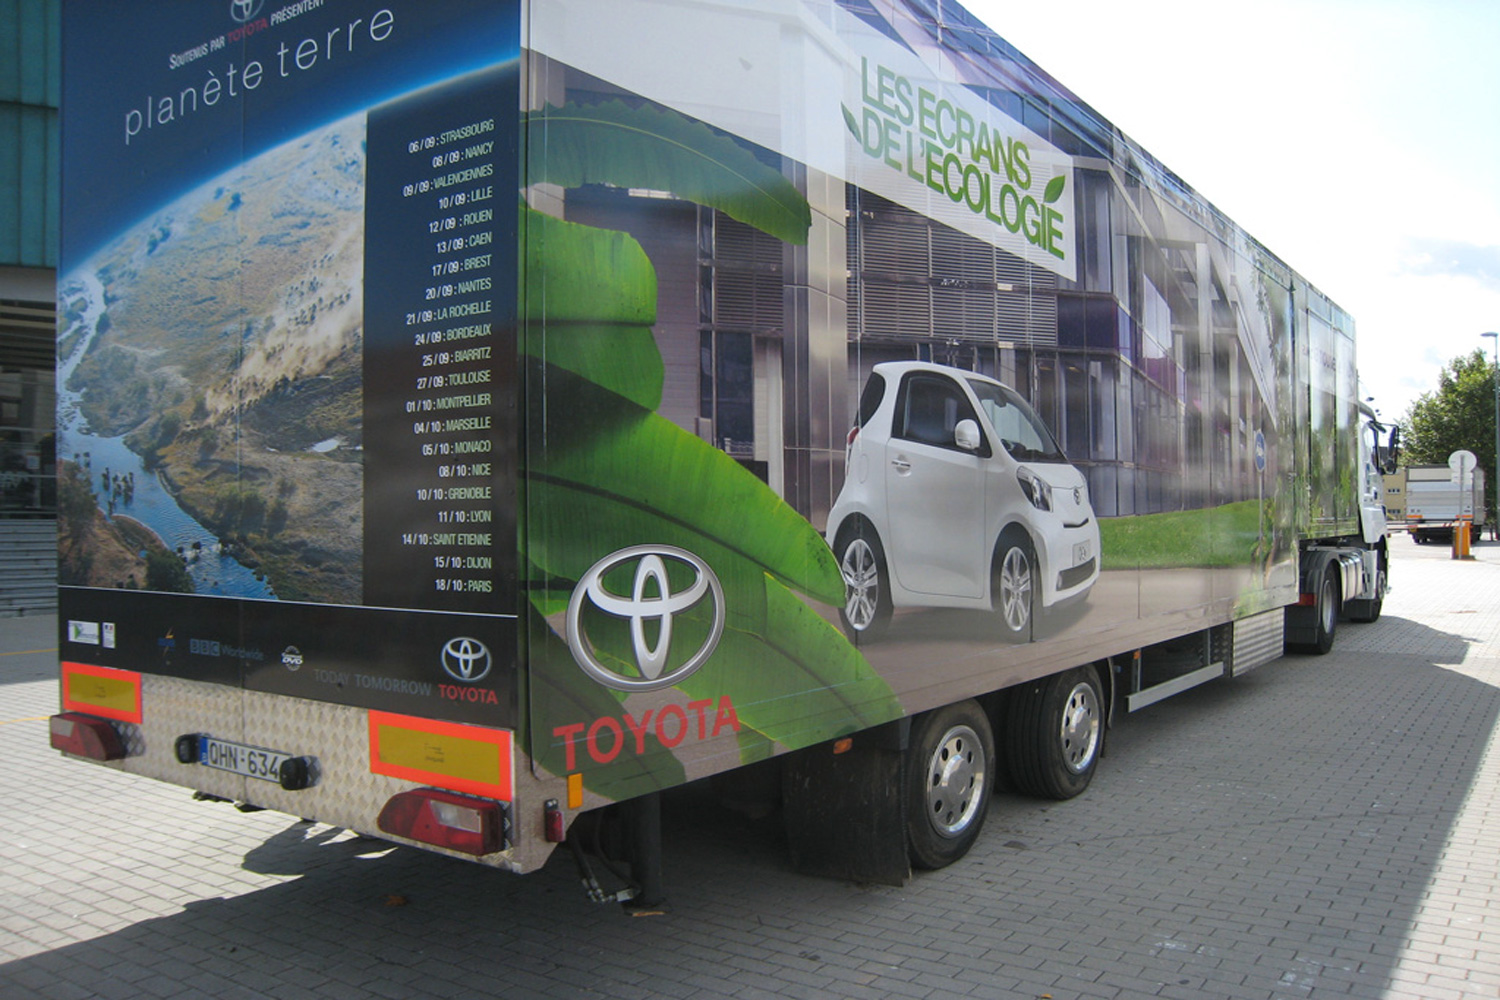 ToyotaProject2005>stage1.jpg